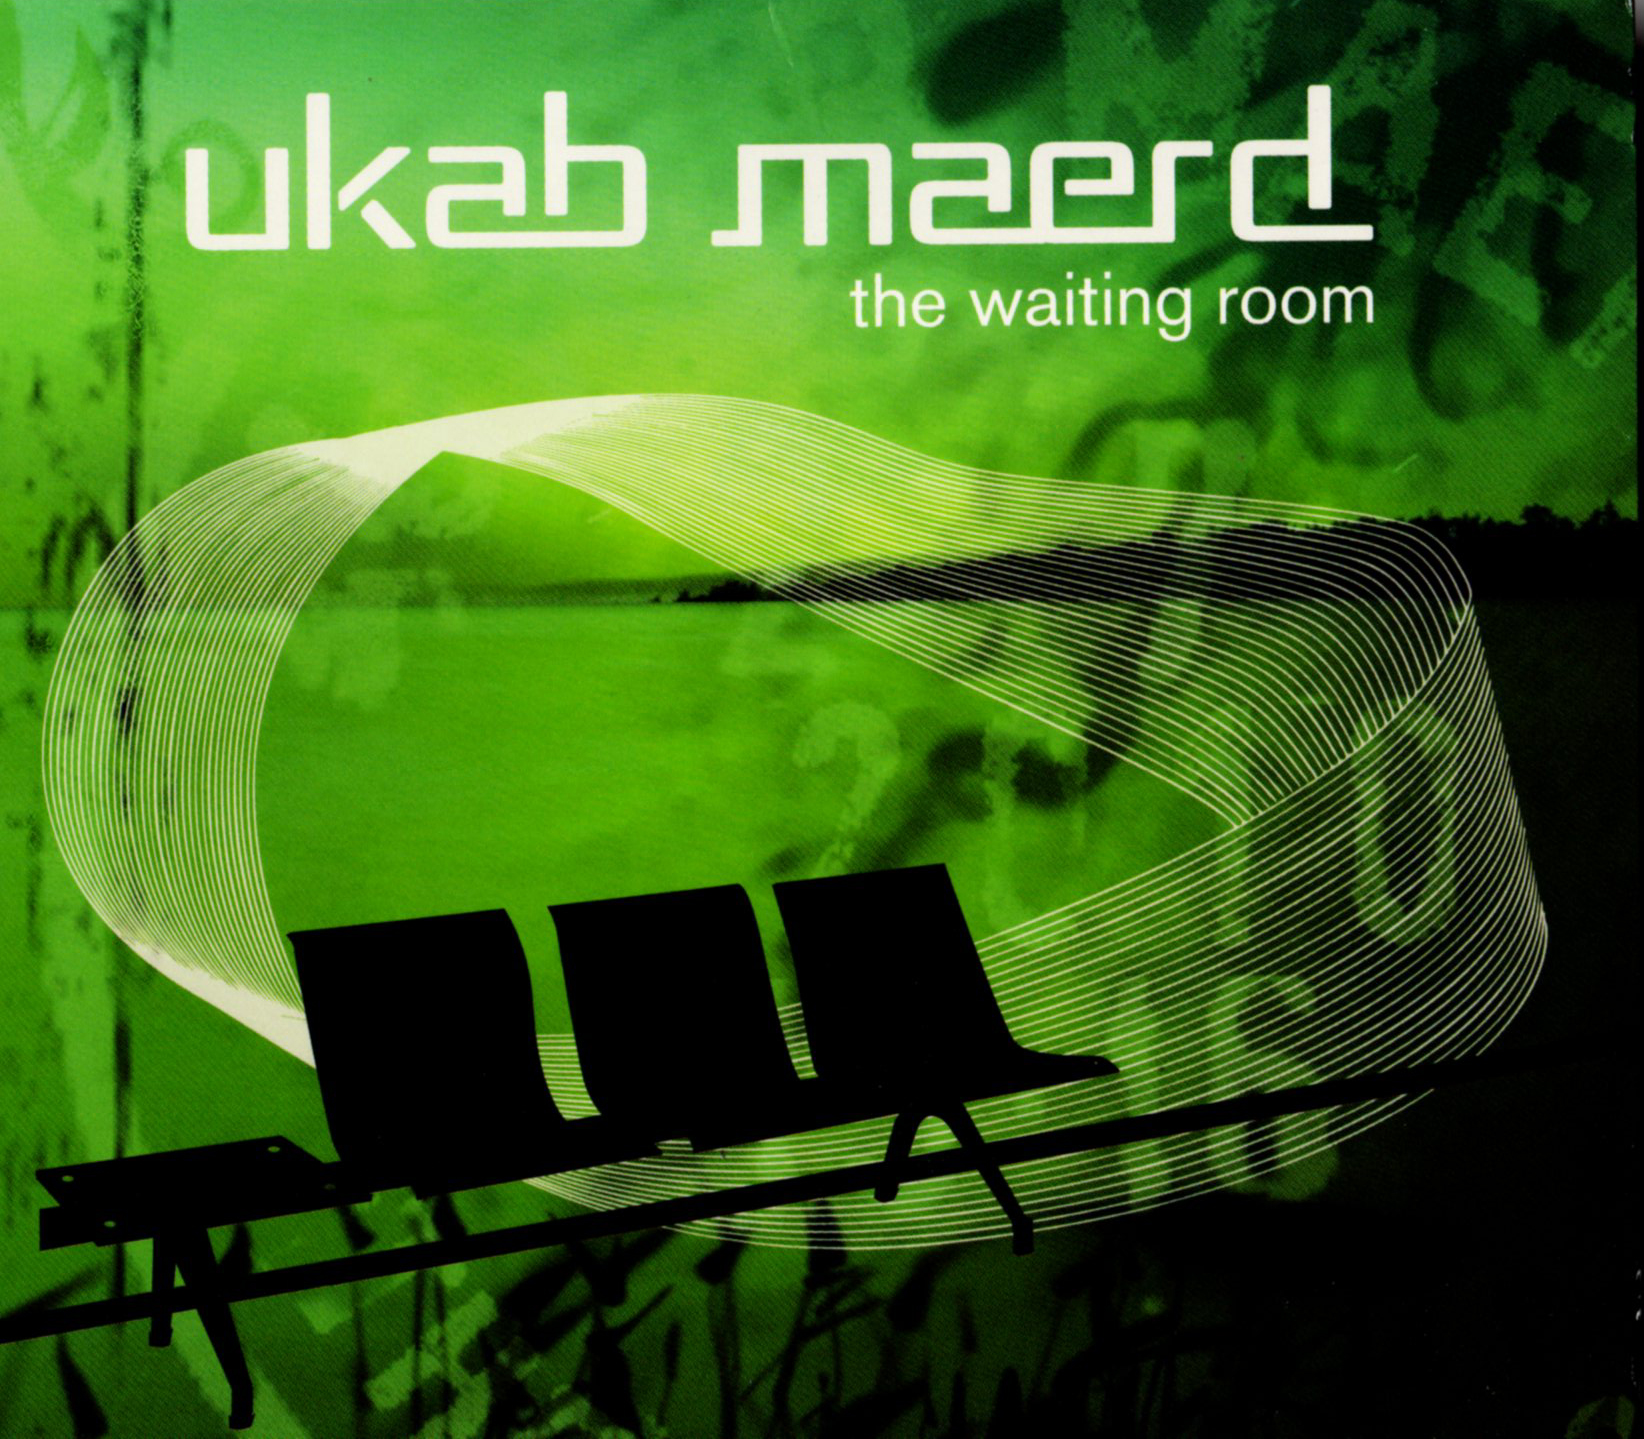 Ukab Mared: The Waiting Room